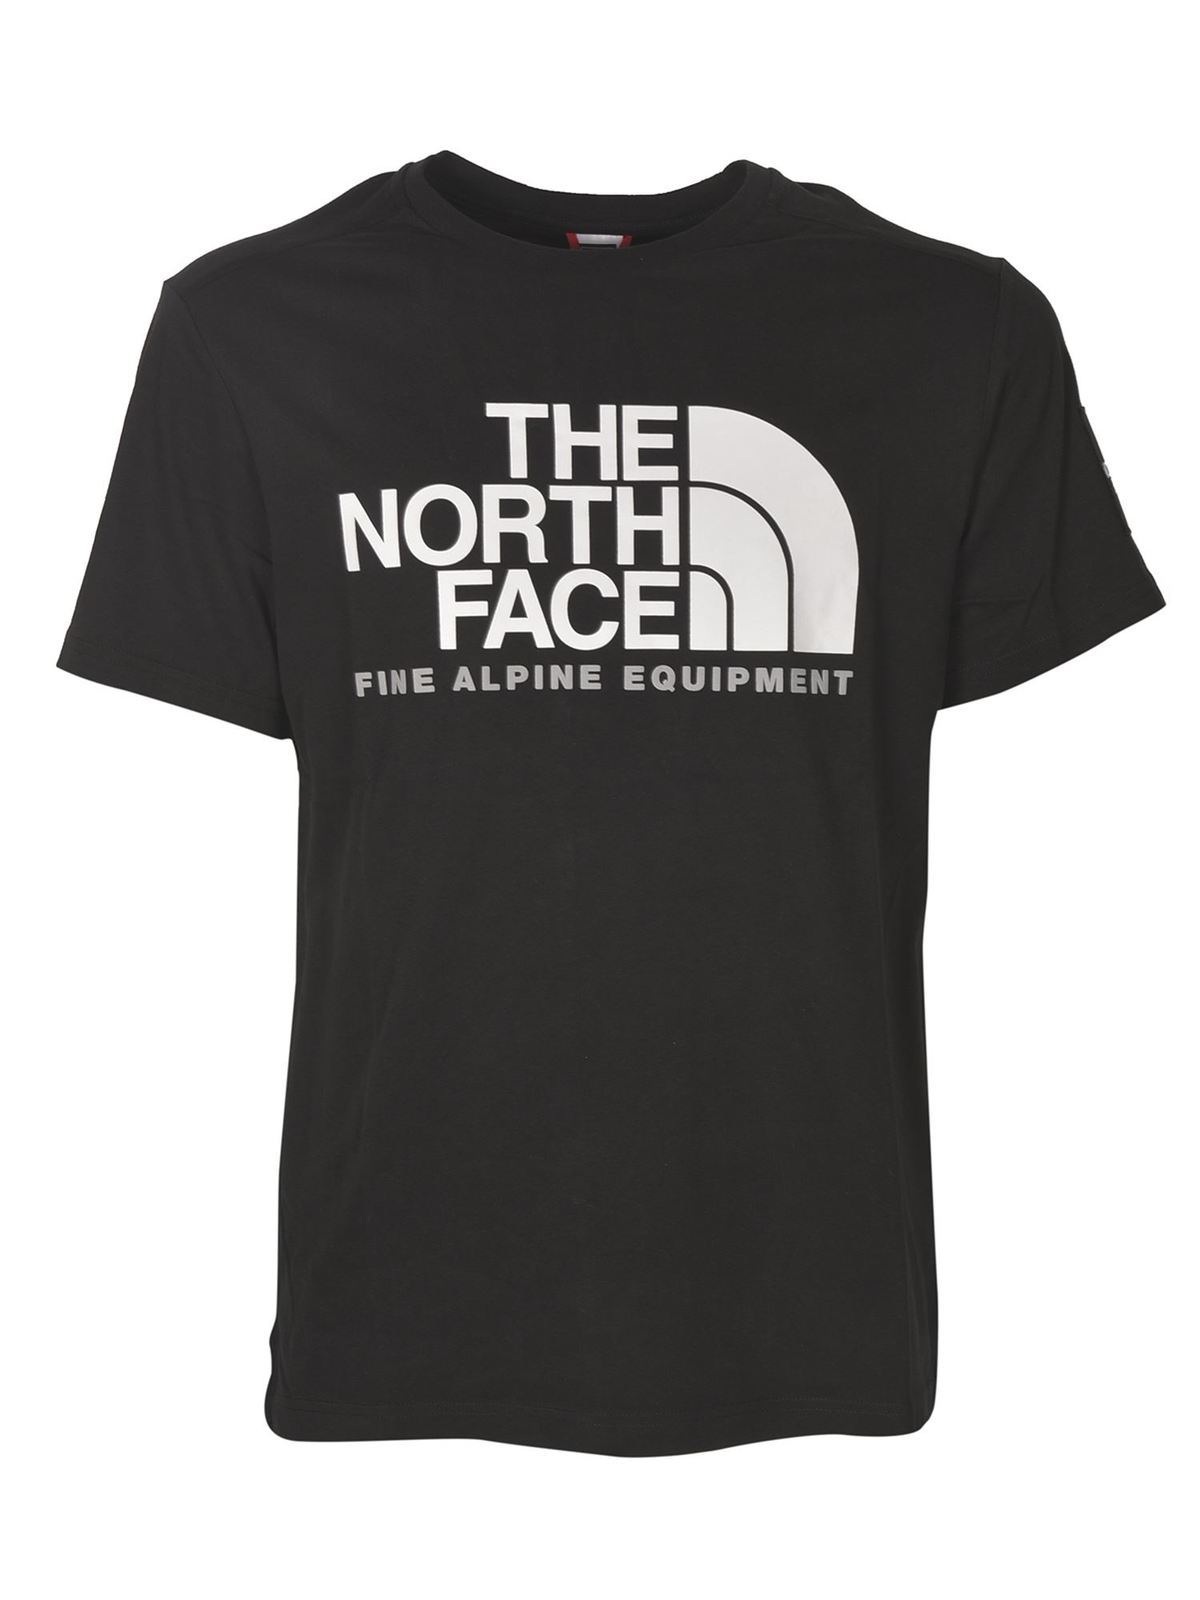 The North Face T-shirts FINE ALPINE T-SHIRT IN BLACK